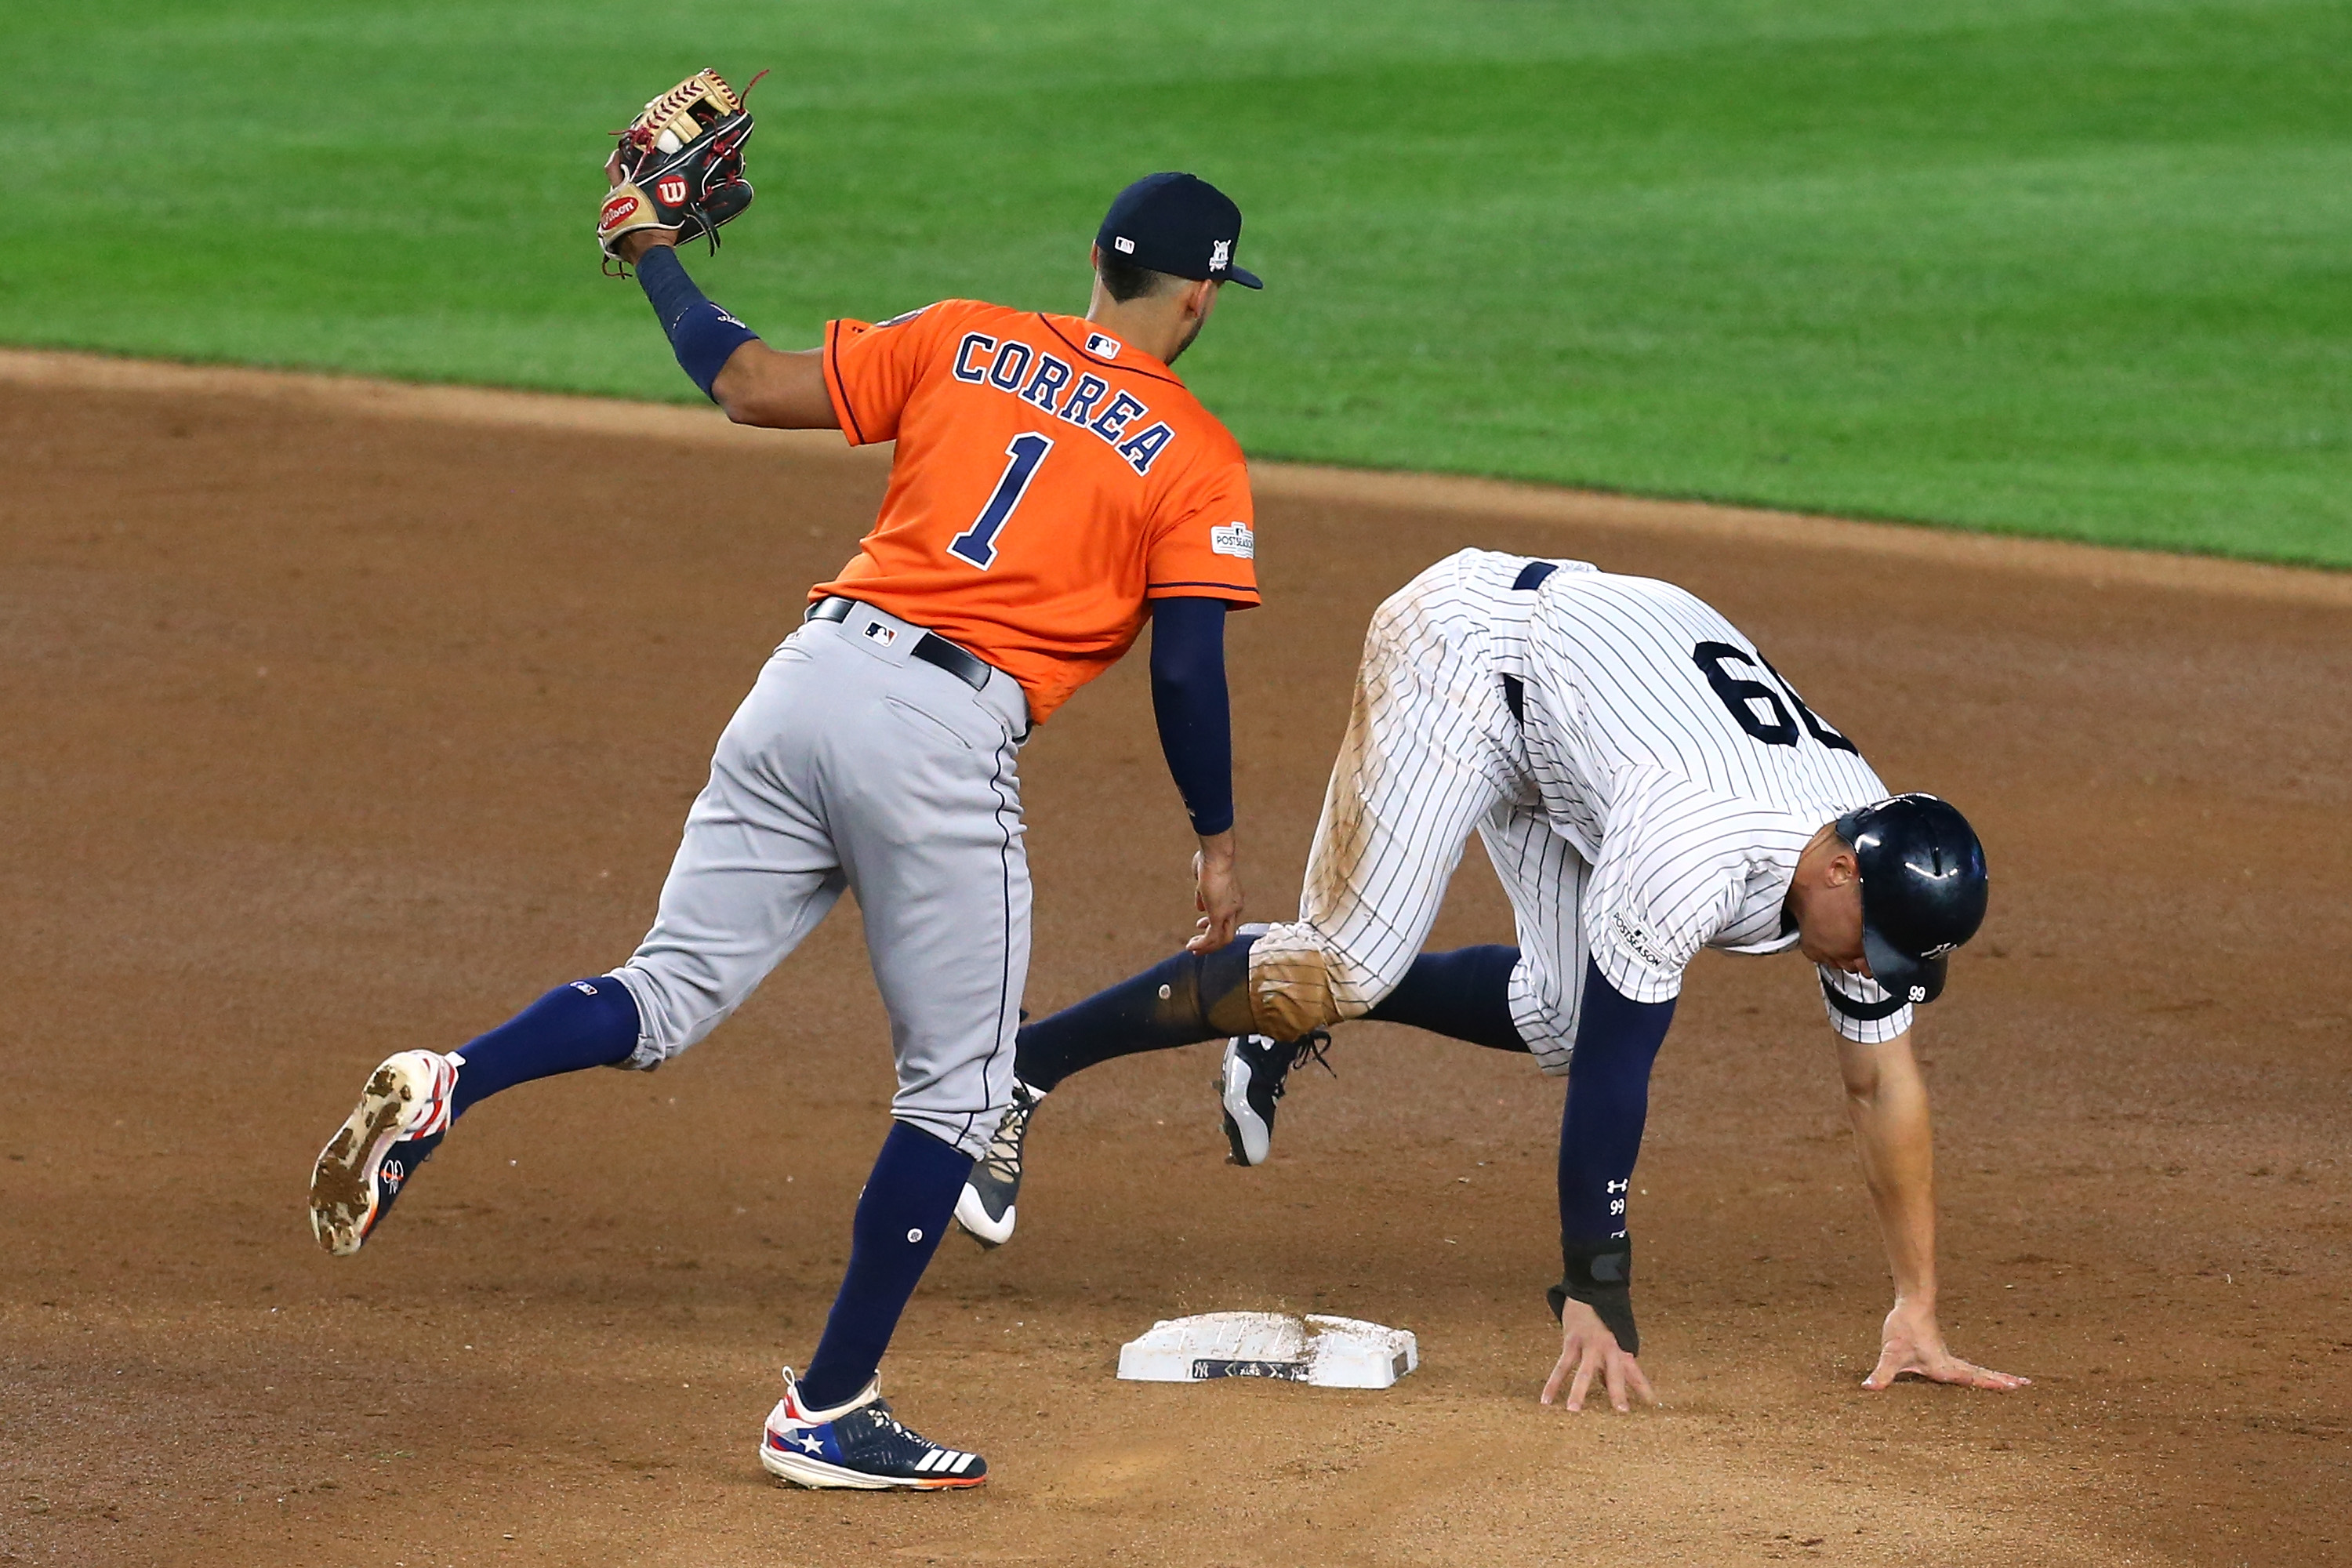 Aaron Judge's base-running blunder leads to confusing replay mess